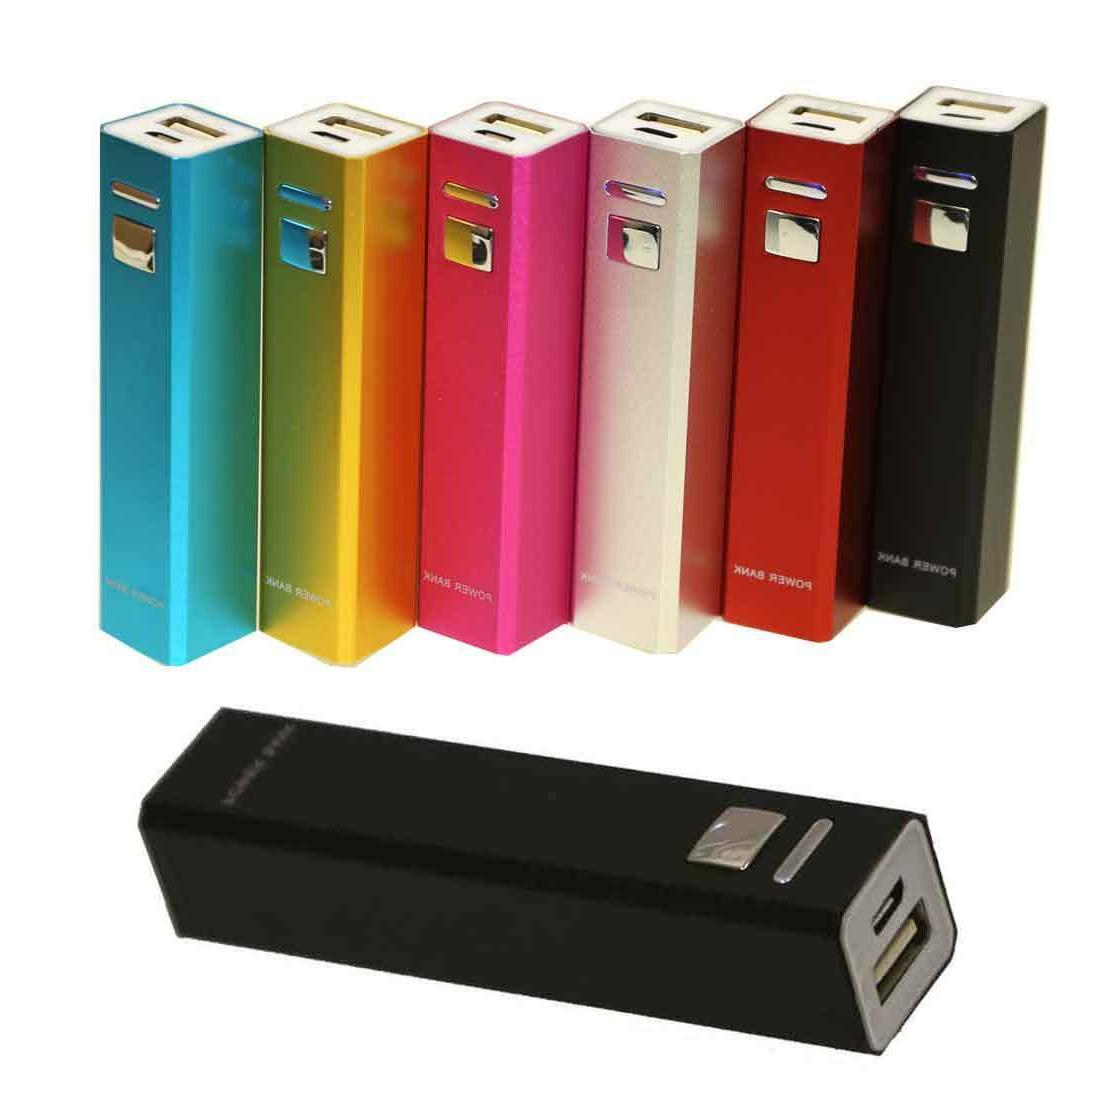 2600mAh Portable Battery Charger Mobile iPhone